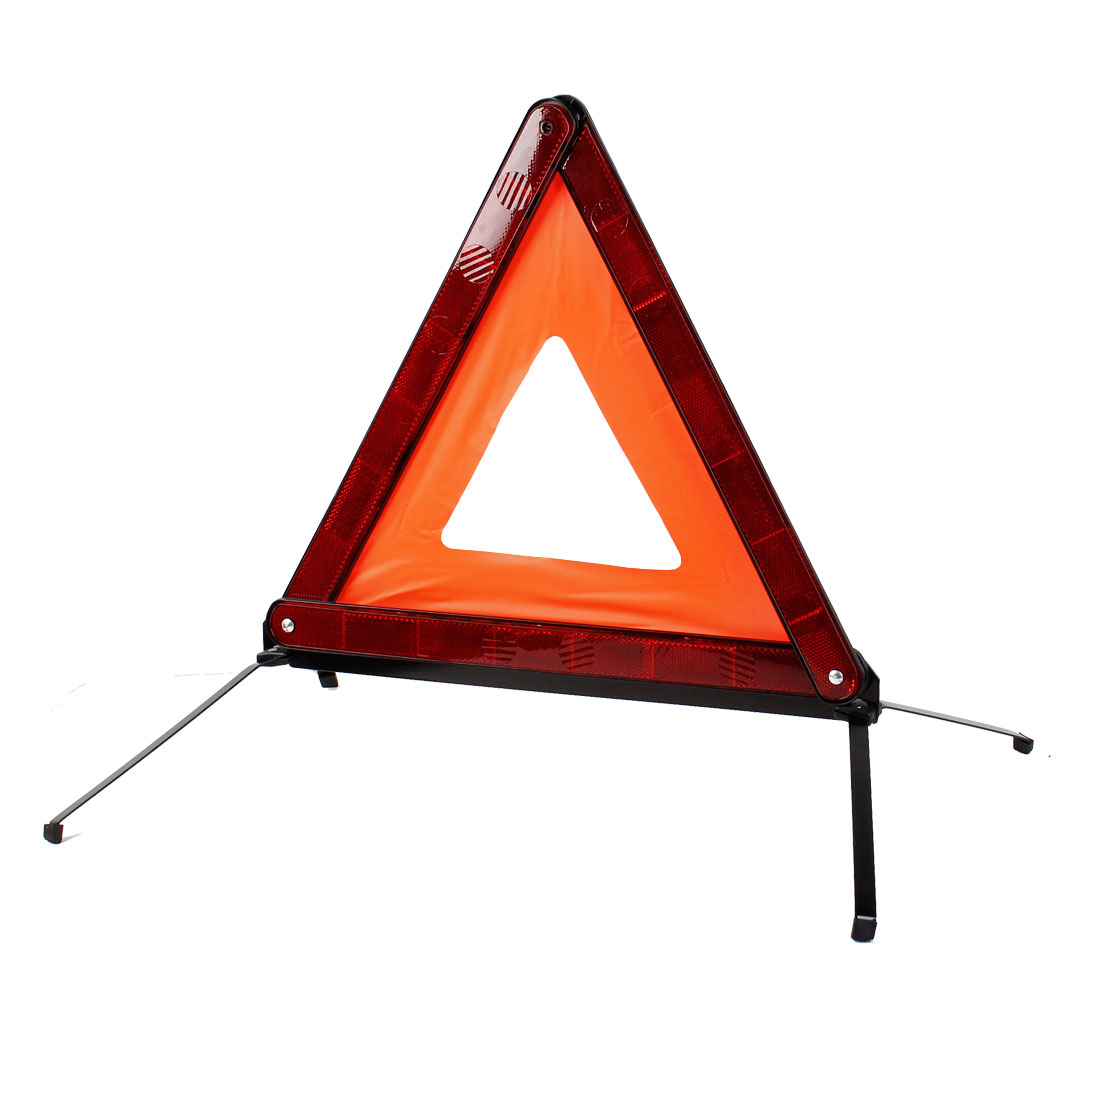 "Road Side Safety Triangles Warning Emergency Marker 17"" Trigonal w Reflective Vest"